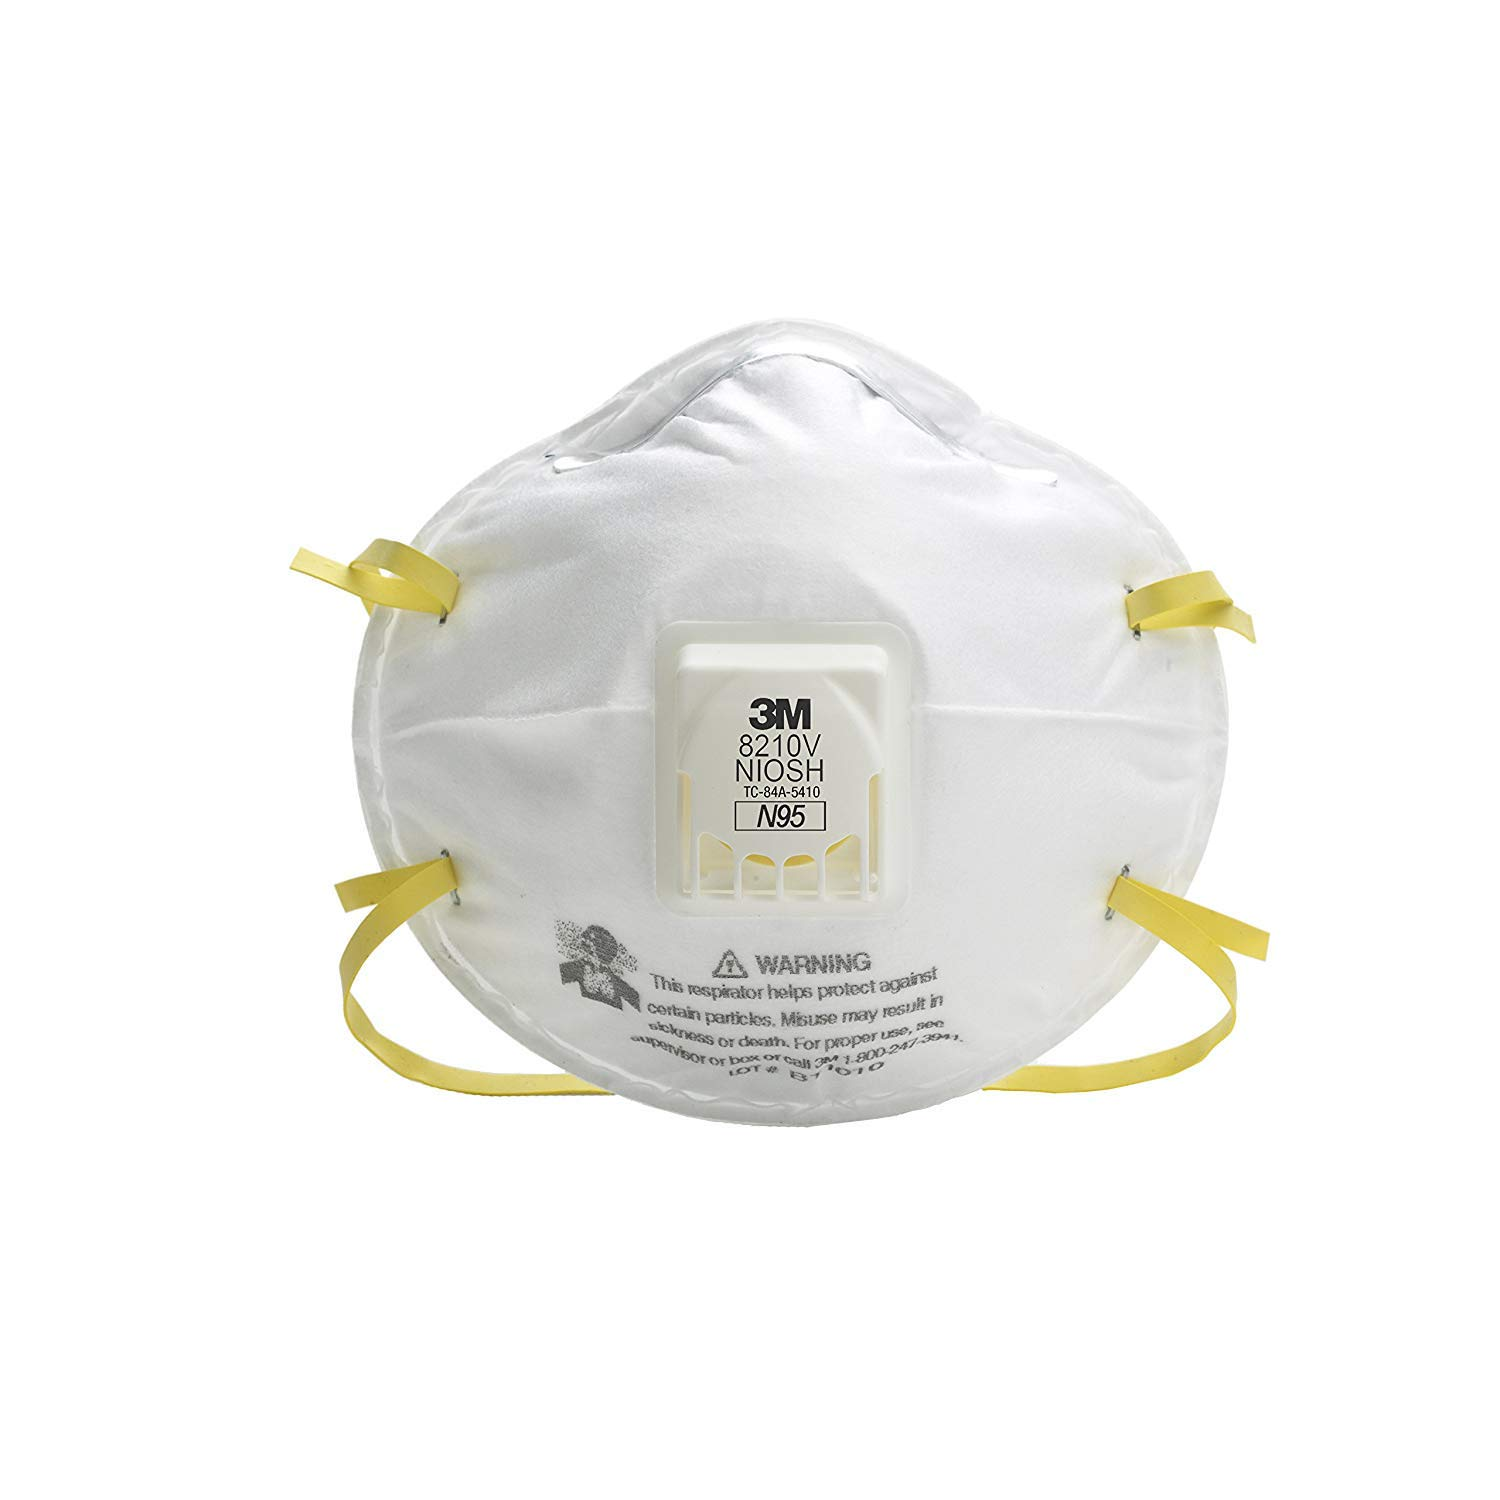 3M (TM) Particulate Respirator 8210V, N95 Respiratory Protection 30/Box